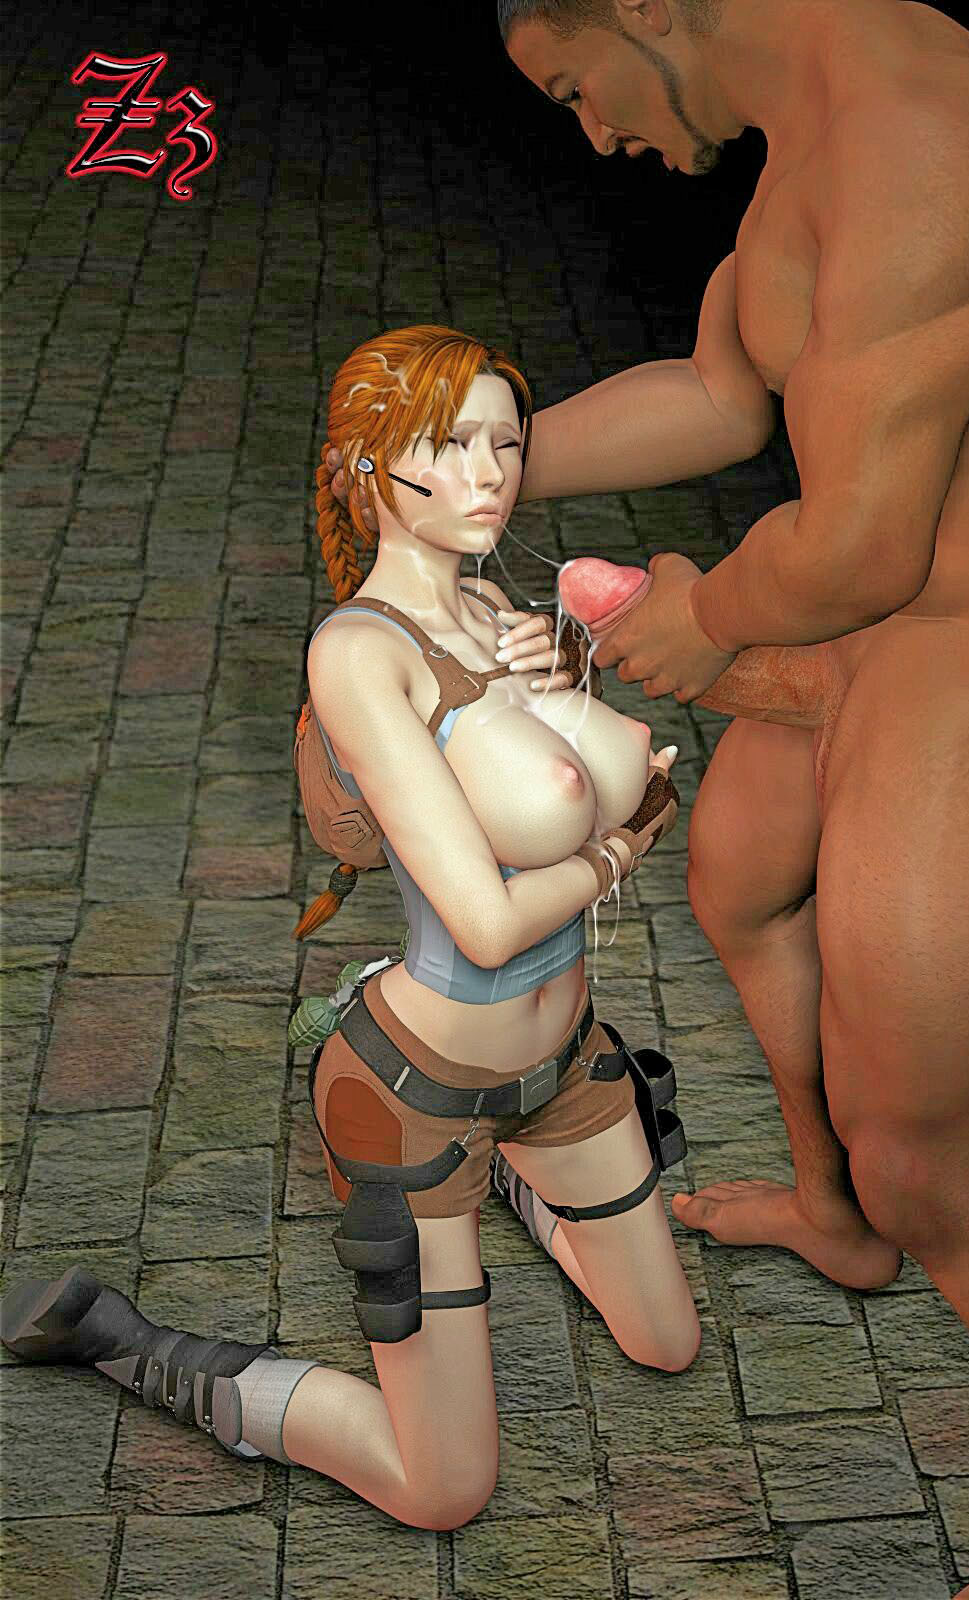 Lara croft sex with midget hentia erotic image